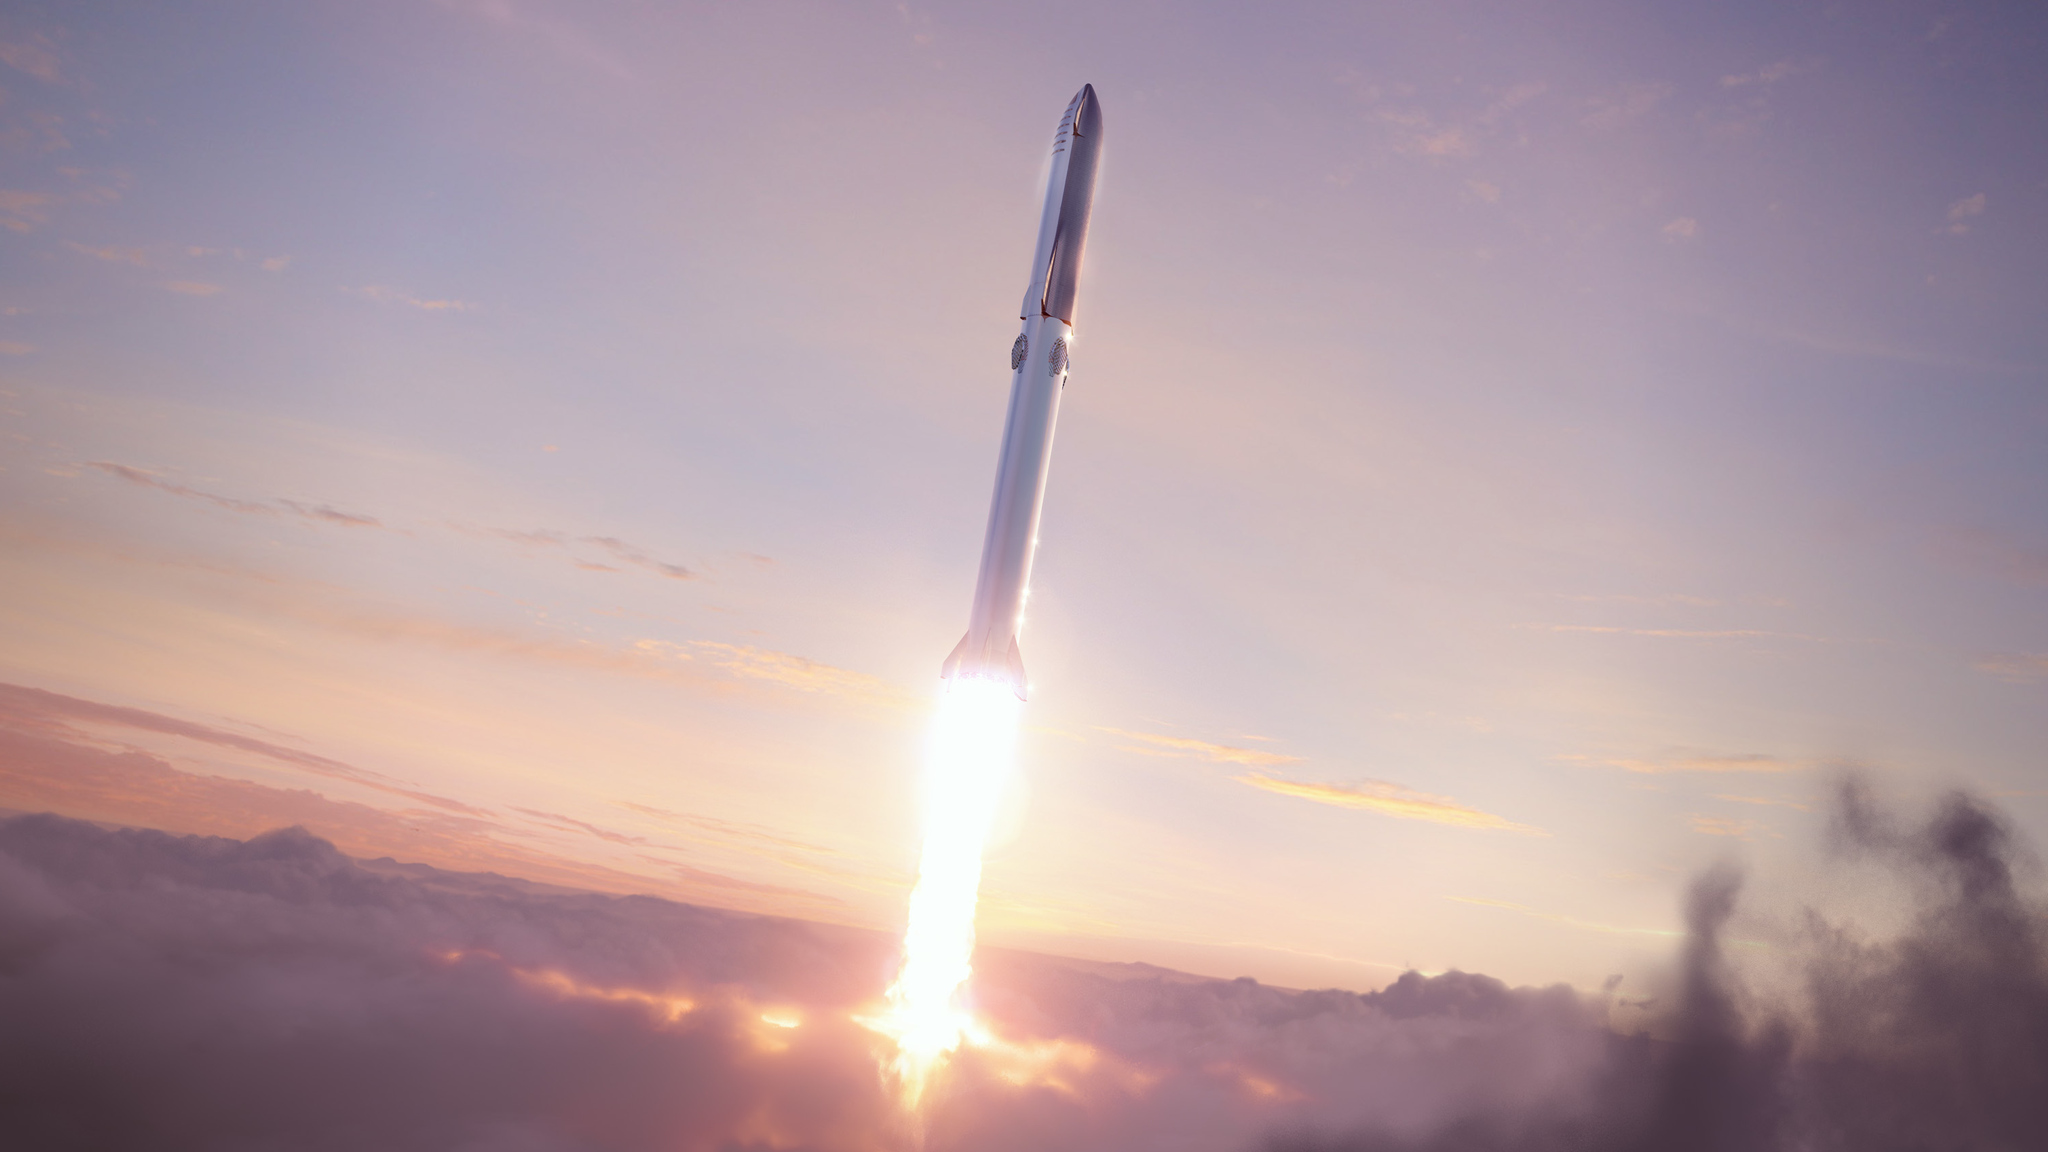 Wallpaper Of Spacex New Starship Super Heavy Launch Human Mars